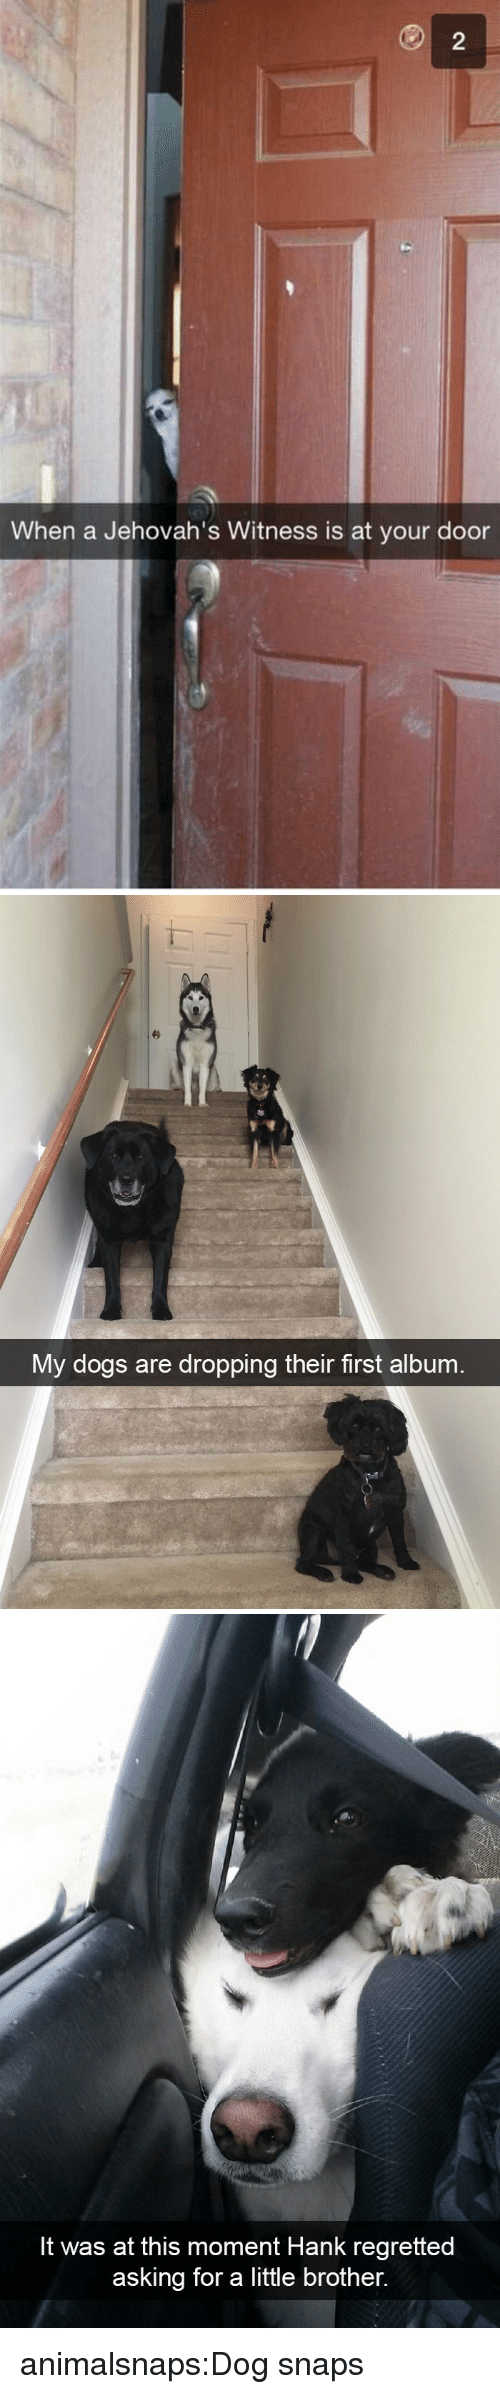 Hank: When a Jehovah's Witness is at your door   My dogs are dropping their first album   It was at this moment Hank regretted  asking for a little brother. animalsnaps:Dog snaps